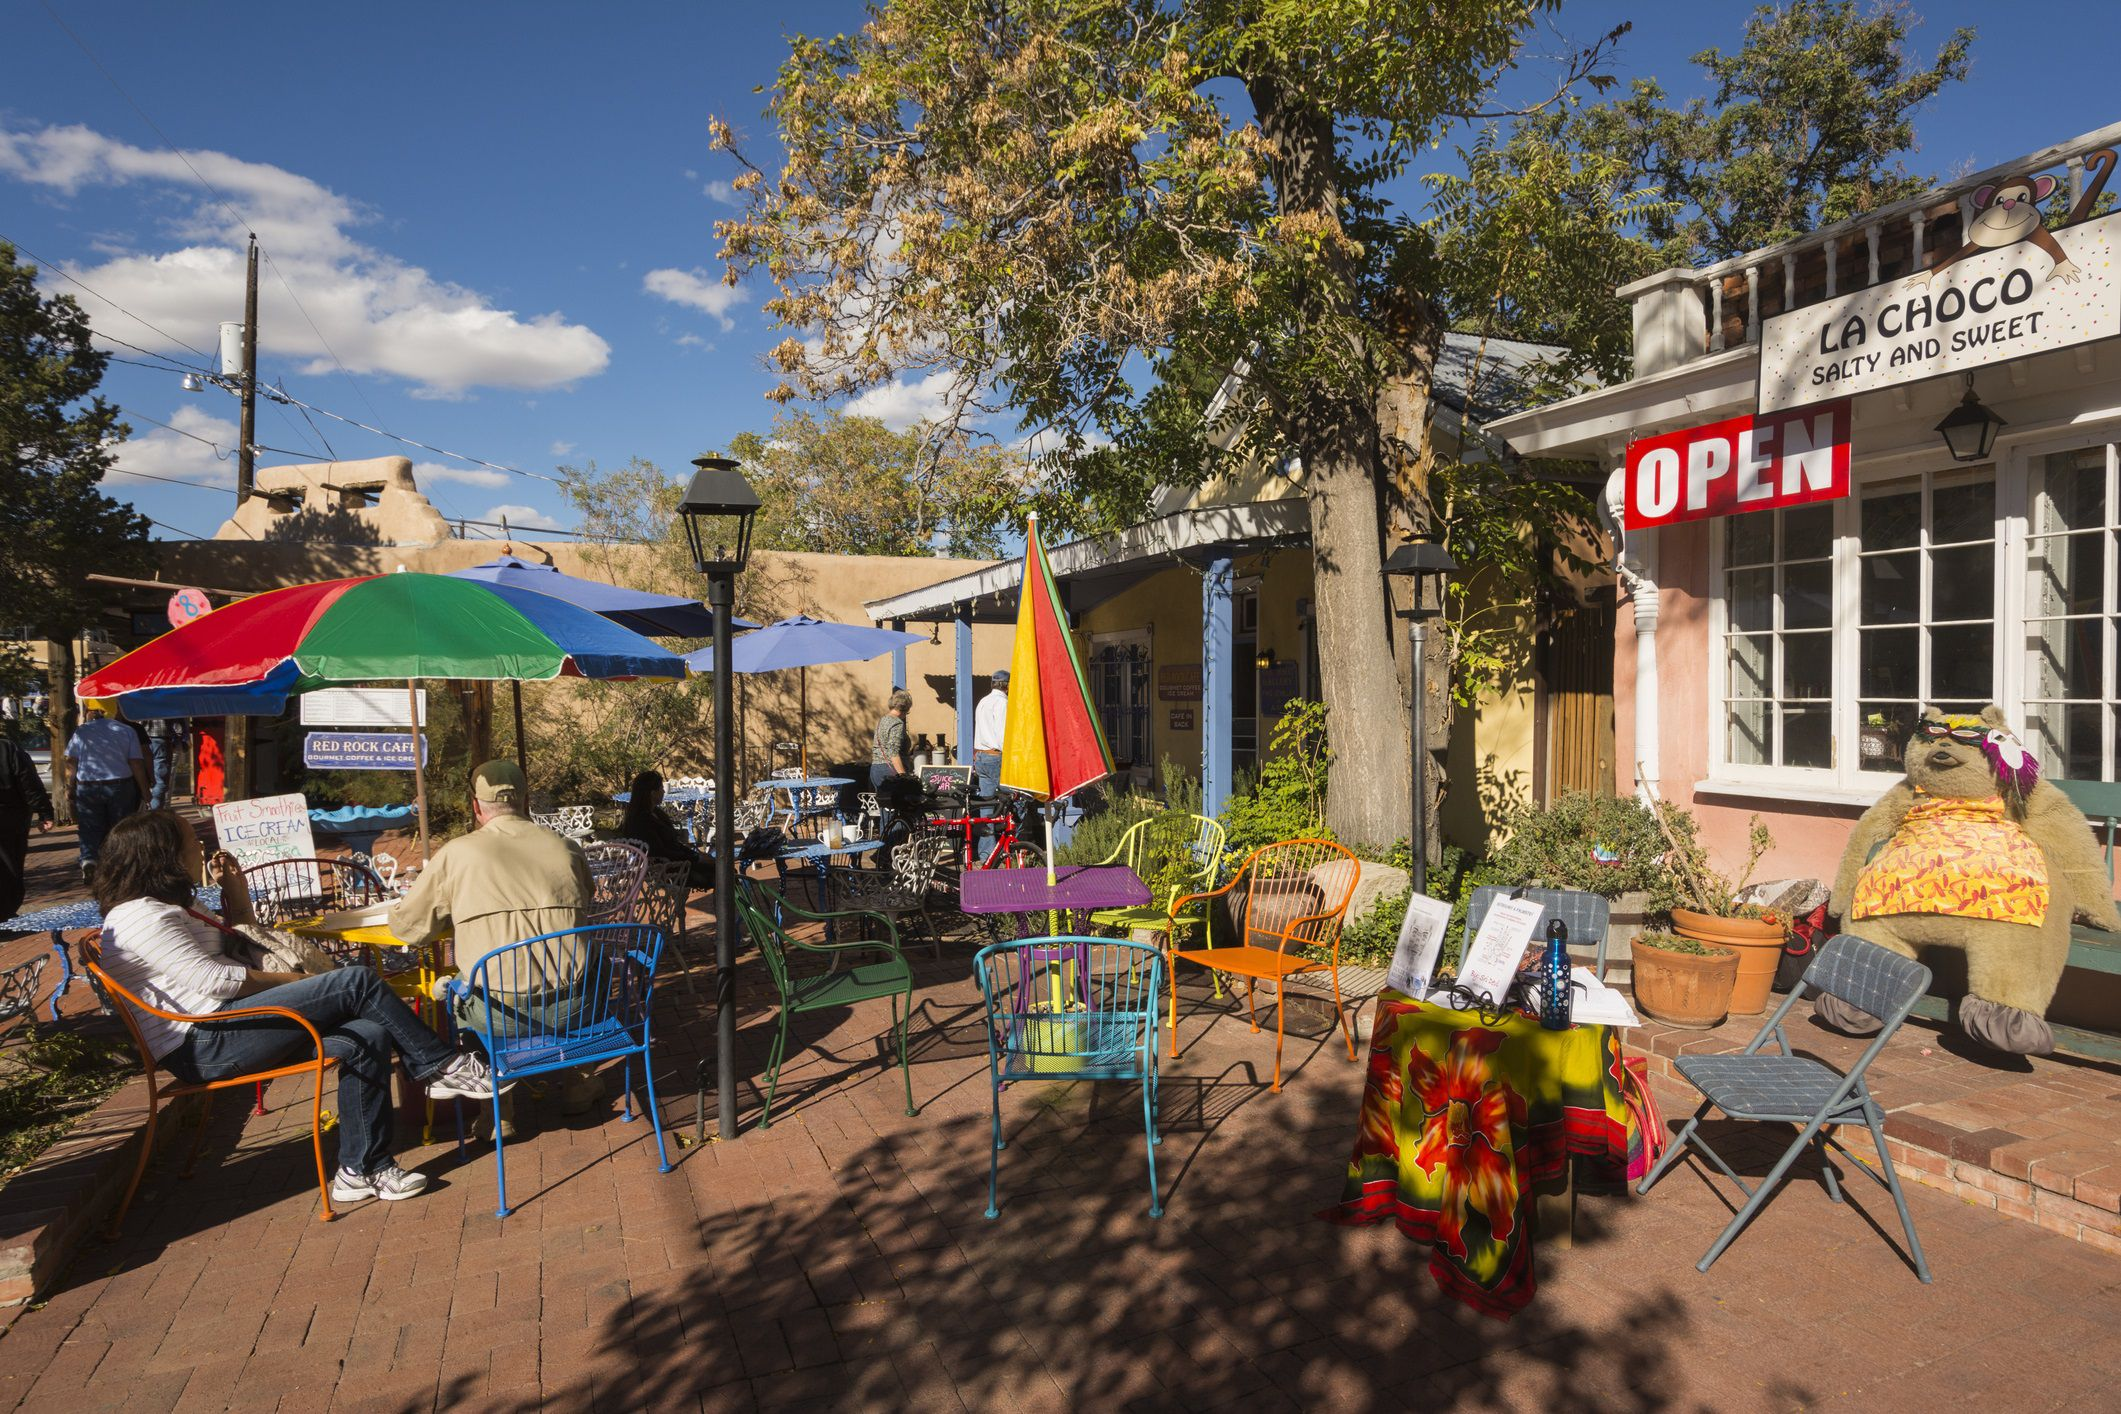 The Best Albuquerque Old Town Restaurants